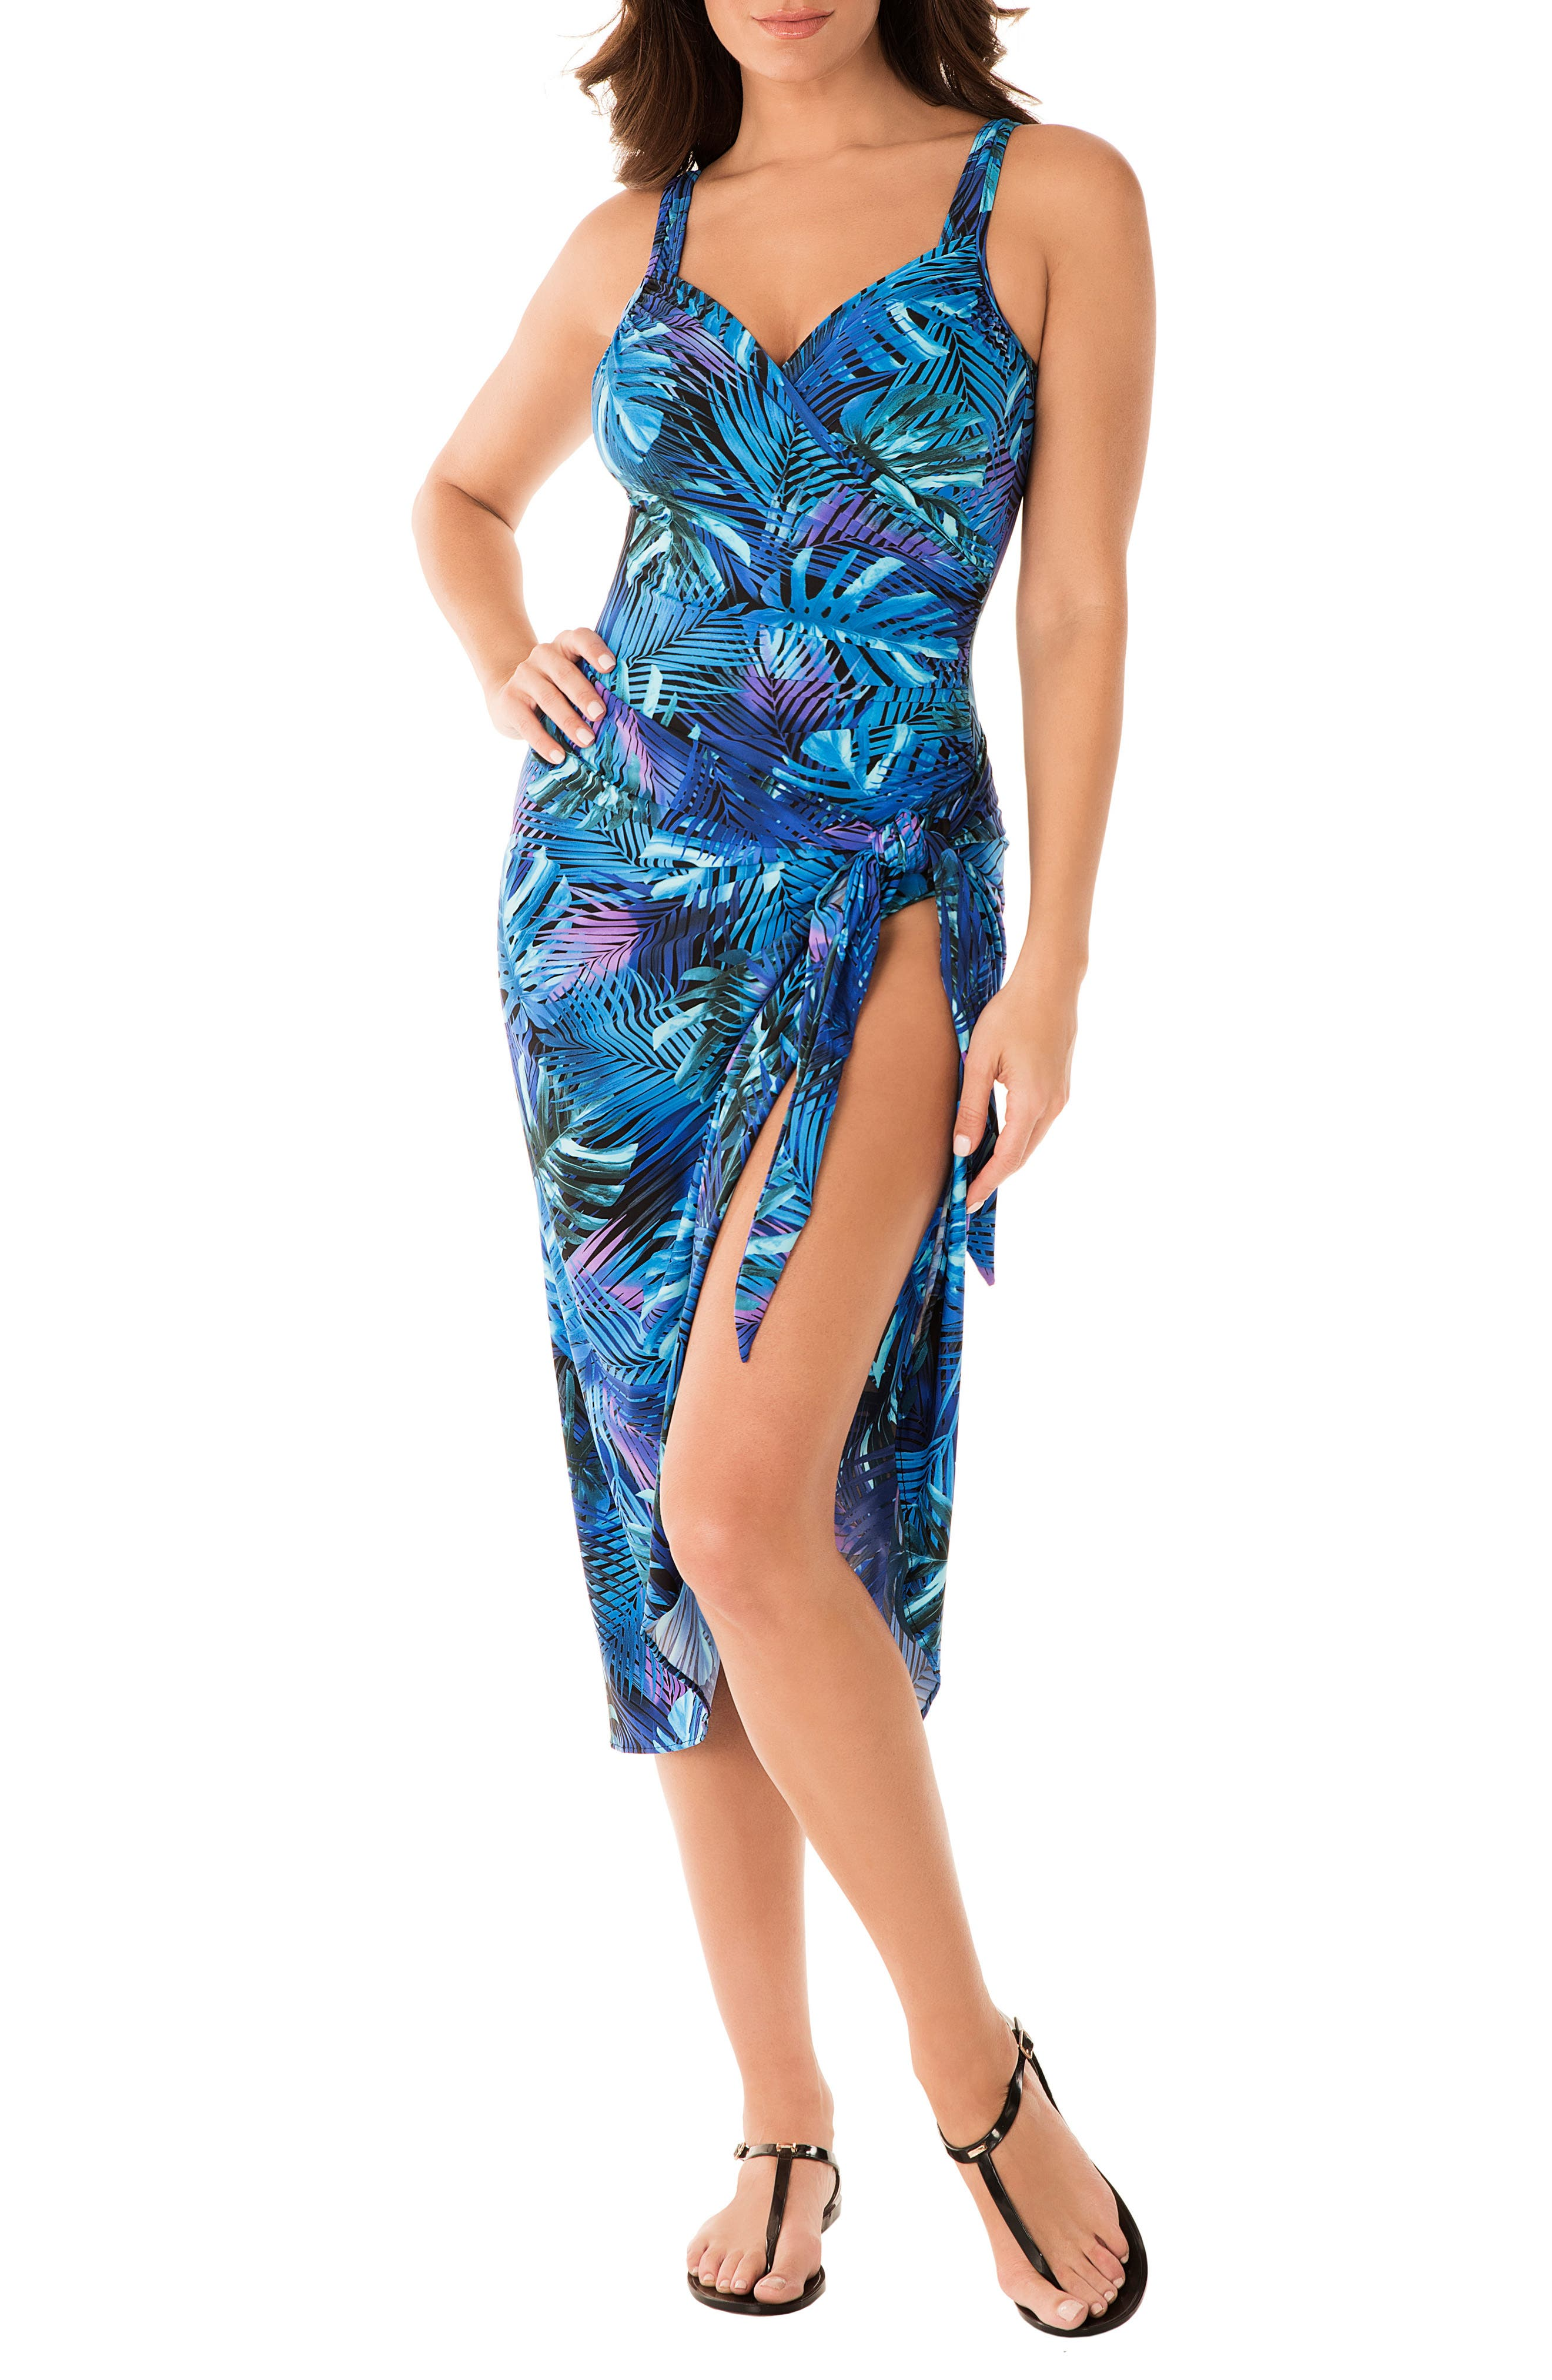 6090ddd0858bb8 Blue Sarongs, Pareos & Cover-Ups | Nordstrom